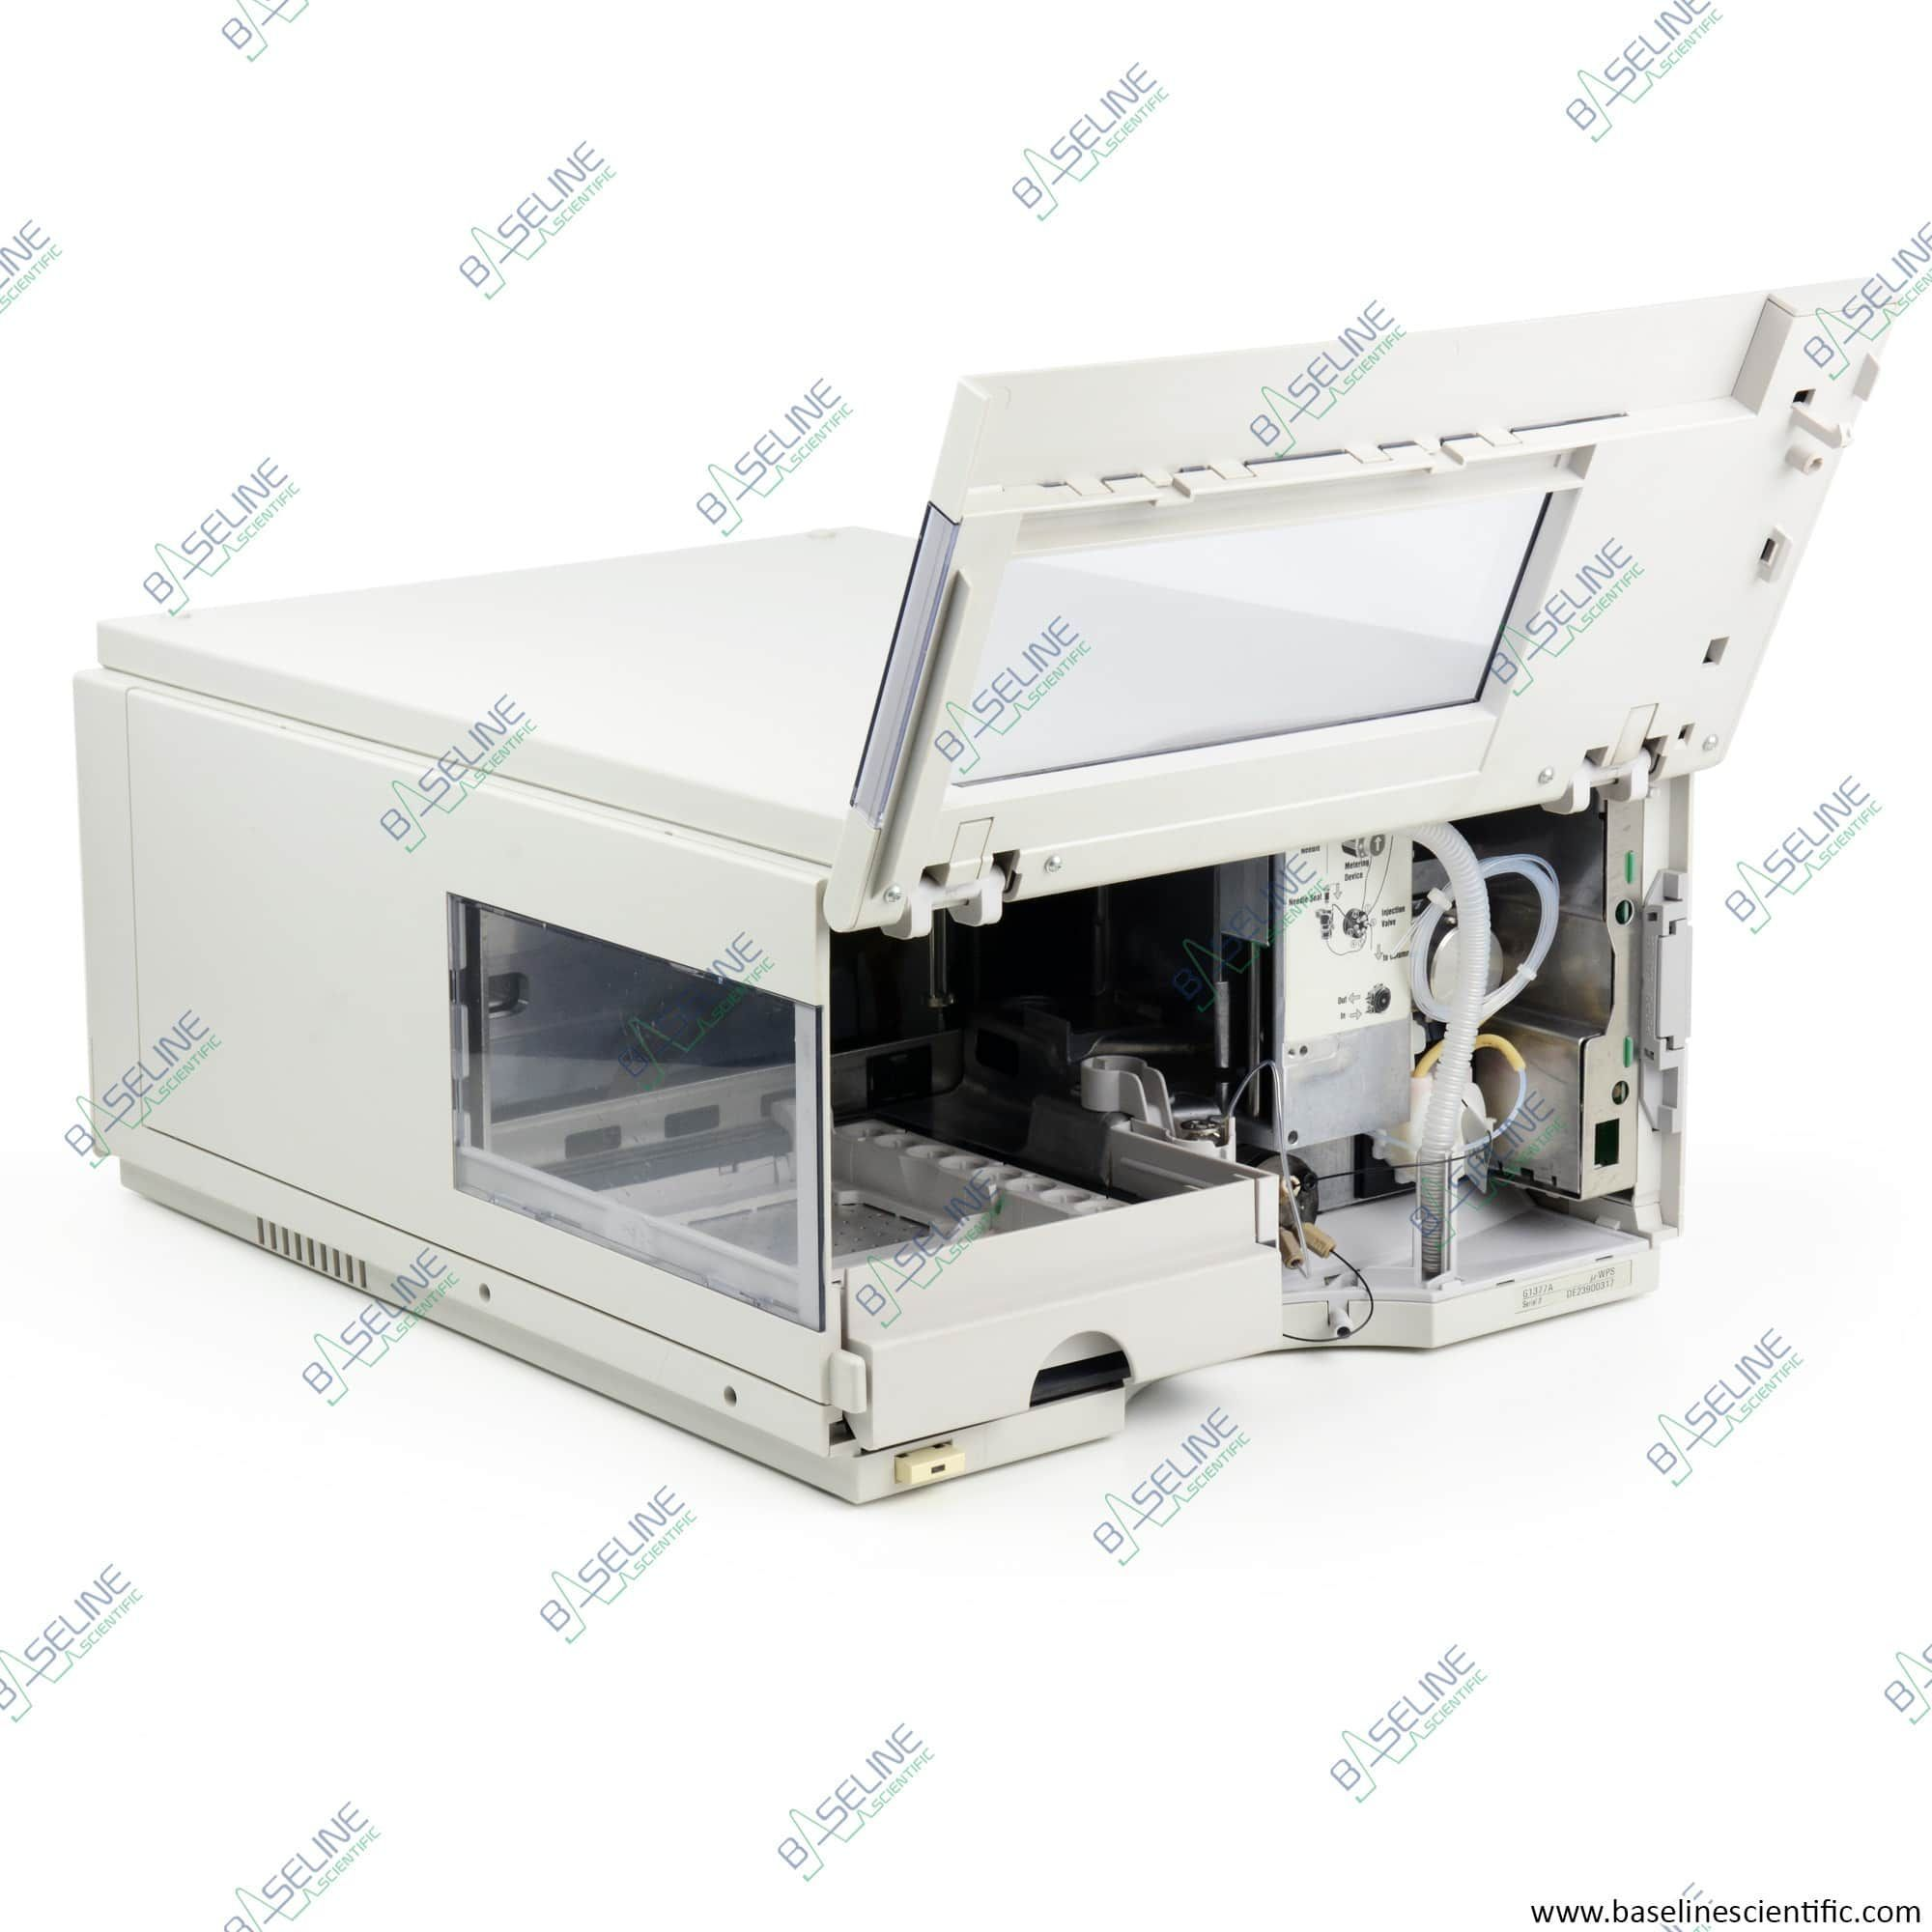 Refurbished Agilent/HP 1100 G1377A Micro Well Plate Autosampler with ONE YEAR WARRANTY